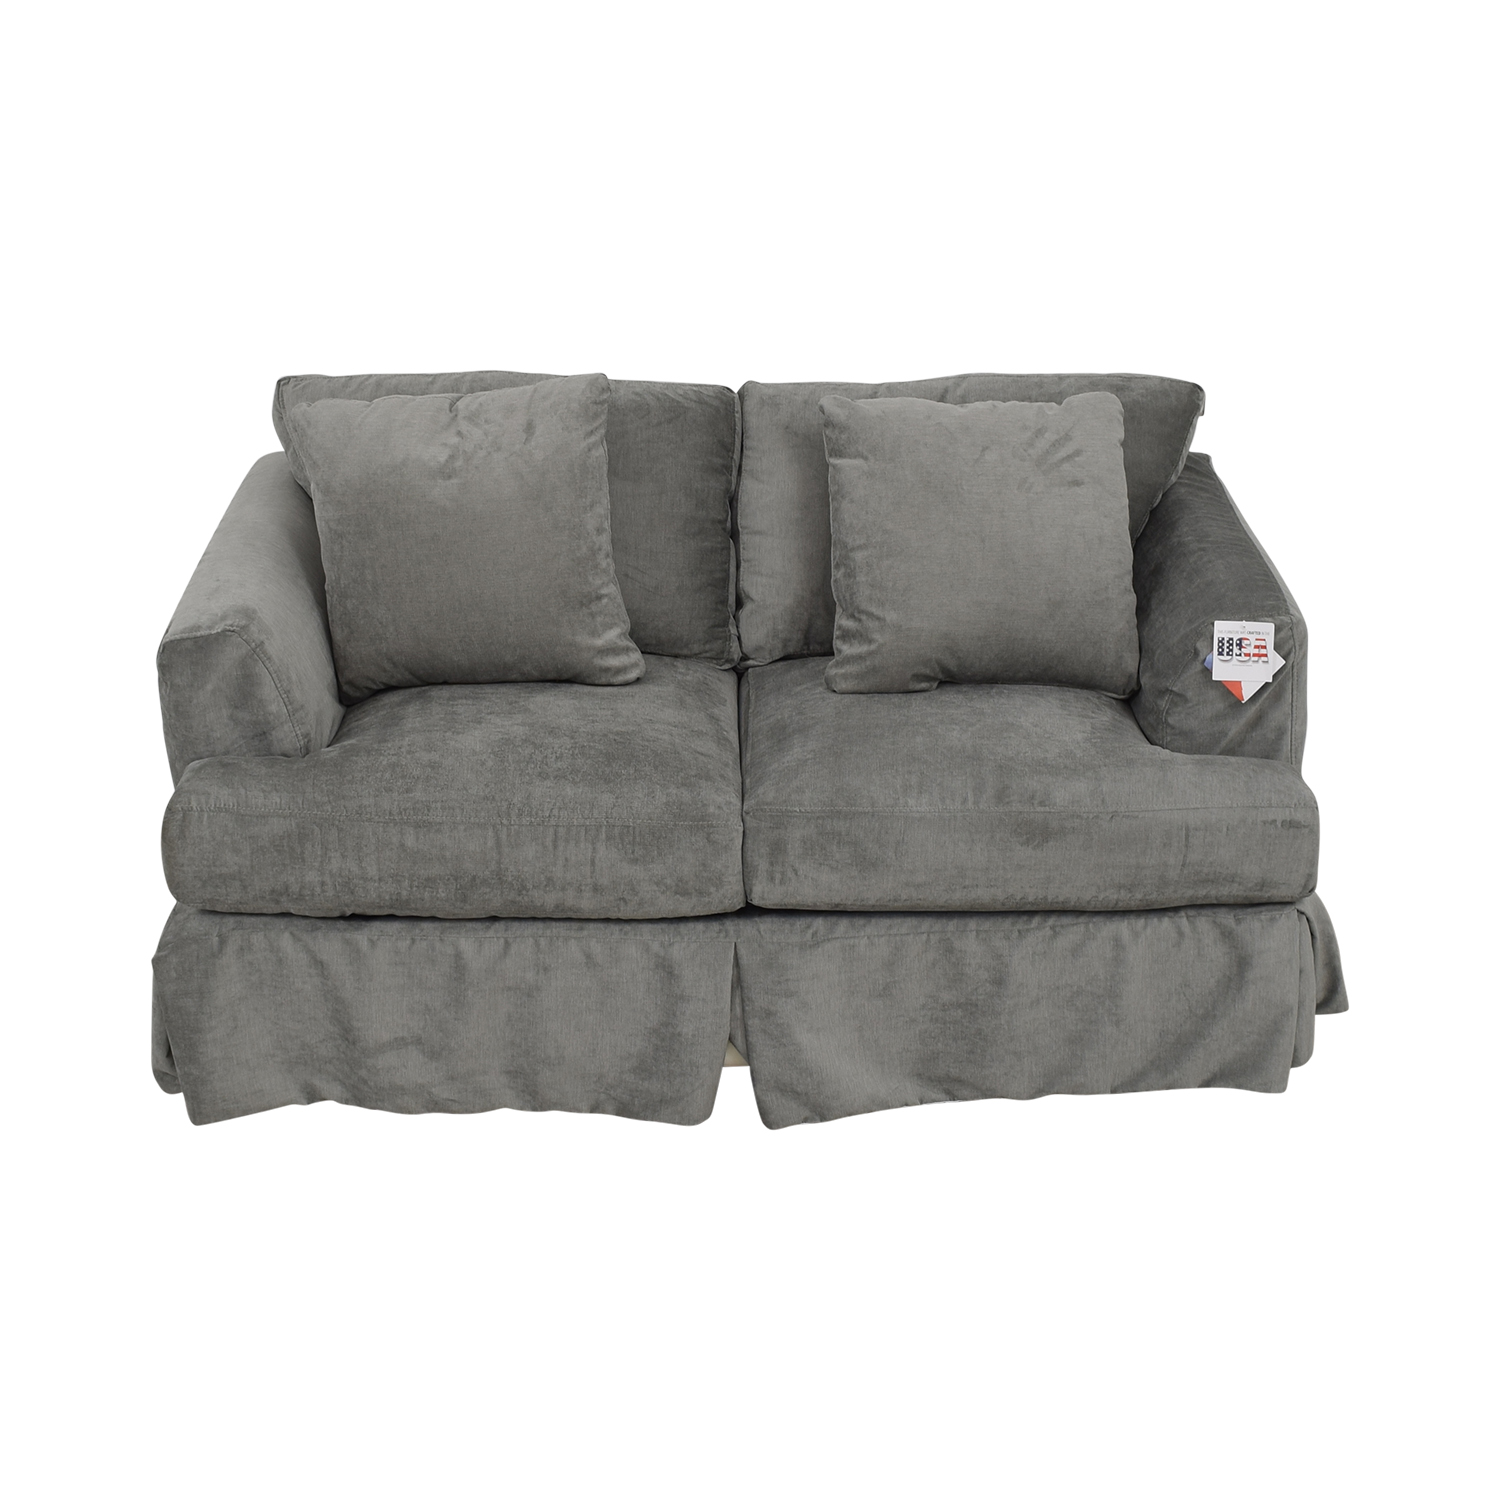 Wayfair Wayfair Grey Upholstered Two-Cushion Loveseat price